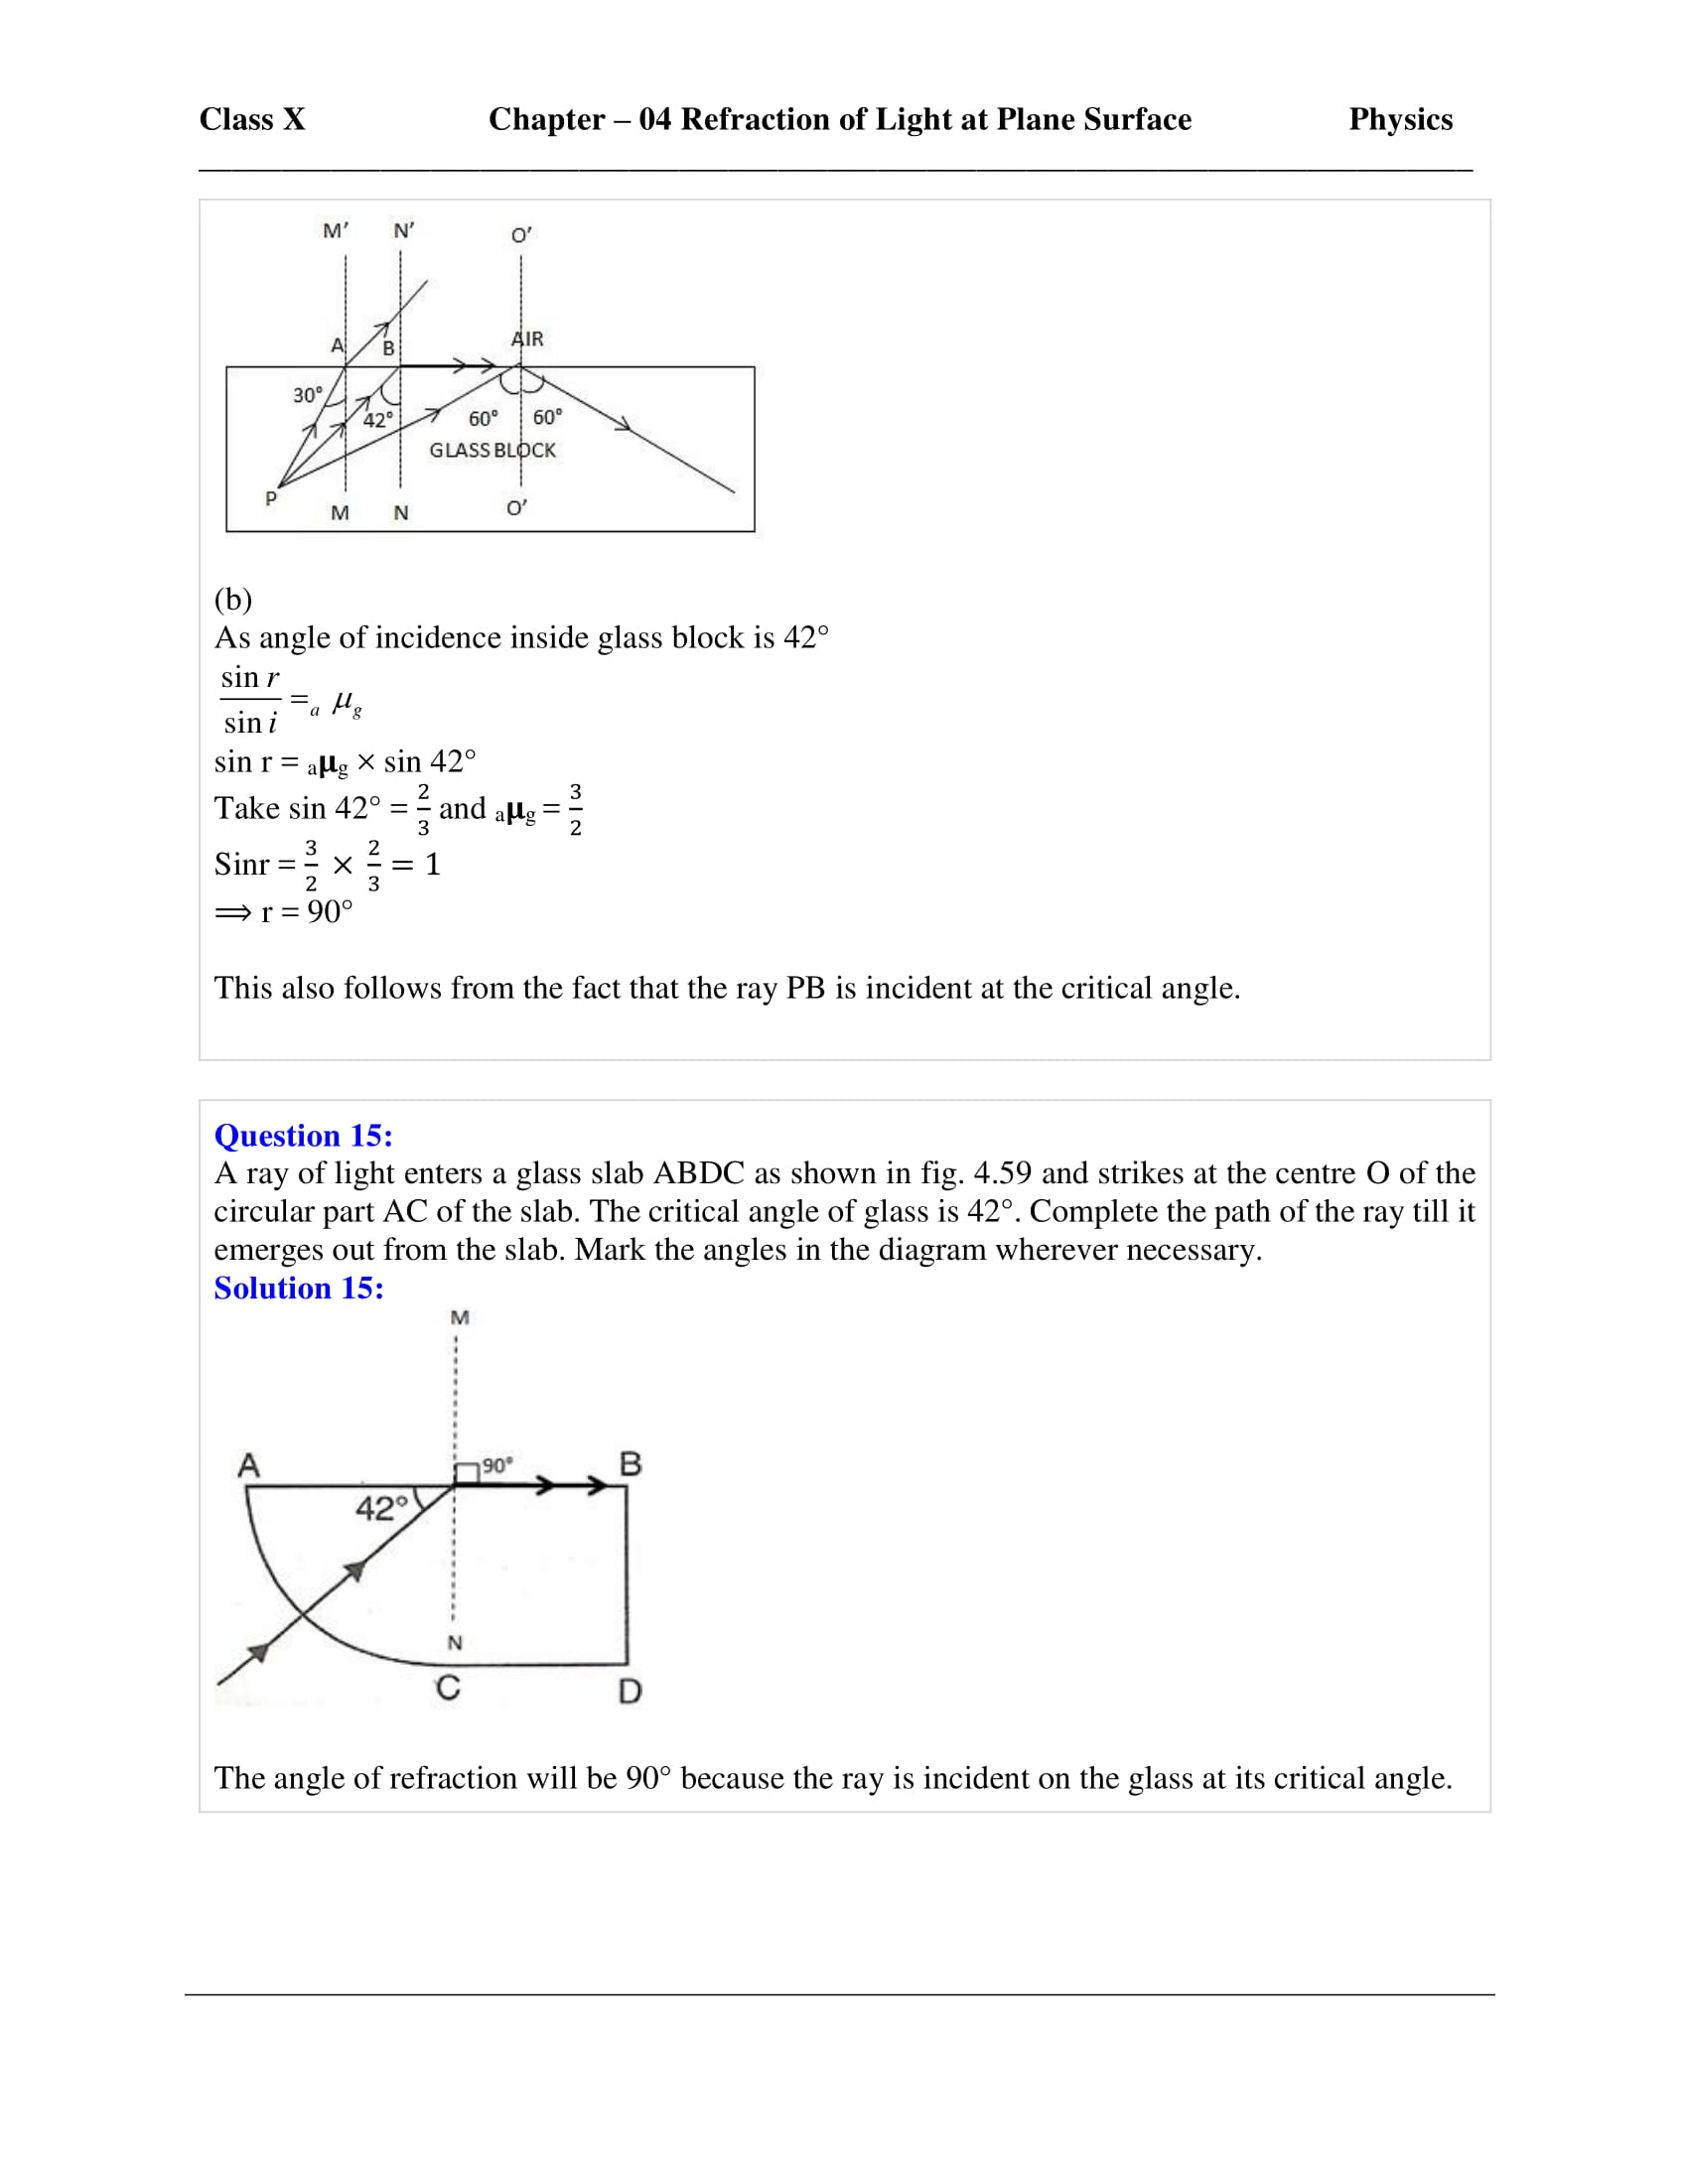 icse-selina-physics-solutions-class-10-chapter-4-refraction-of-light-at-plane-surfaces-33